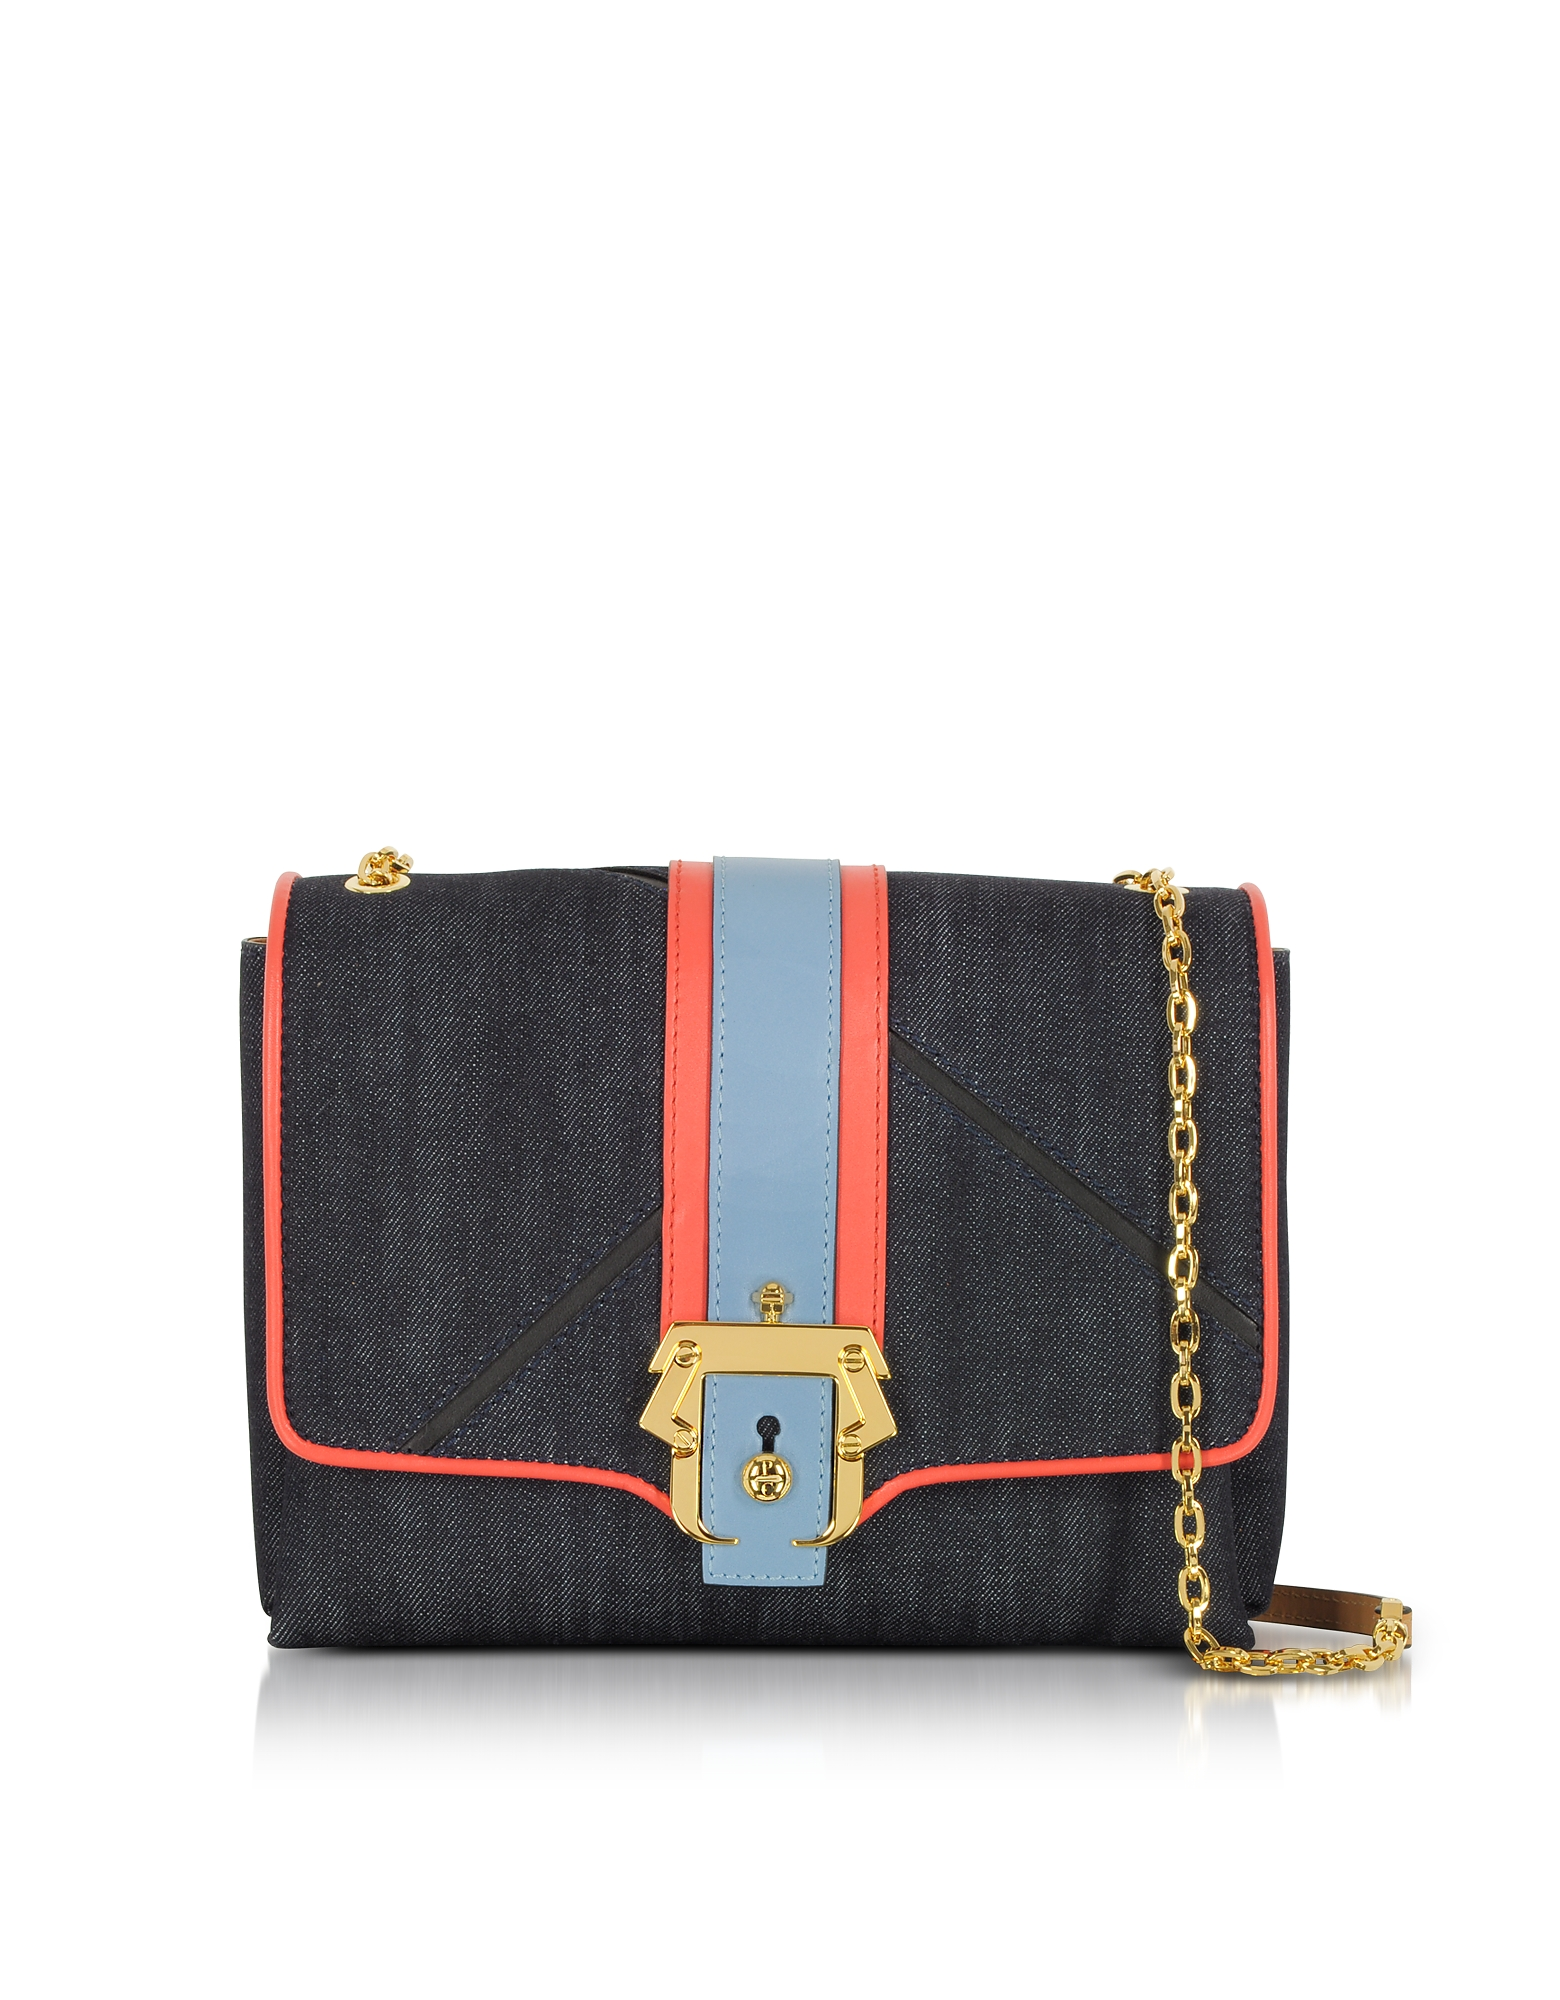 Image of Paula Cademartori Designer Handbags, Alice Boho Indigo Denim Shoulder Bag